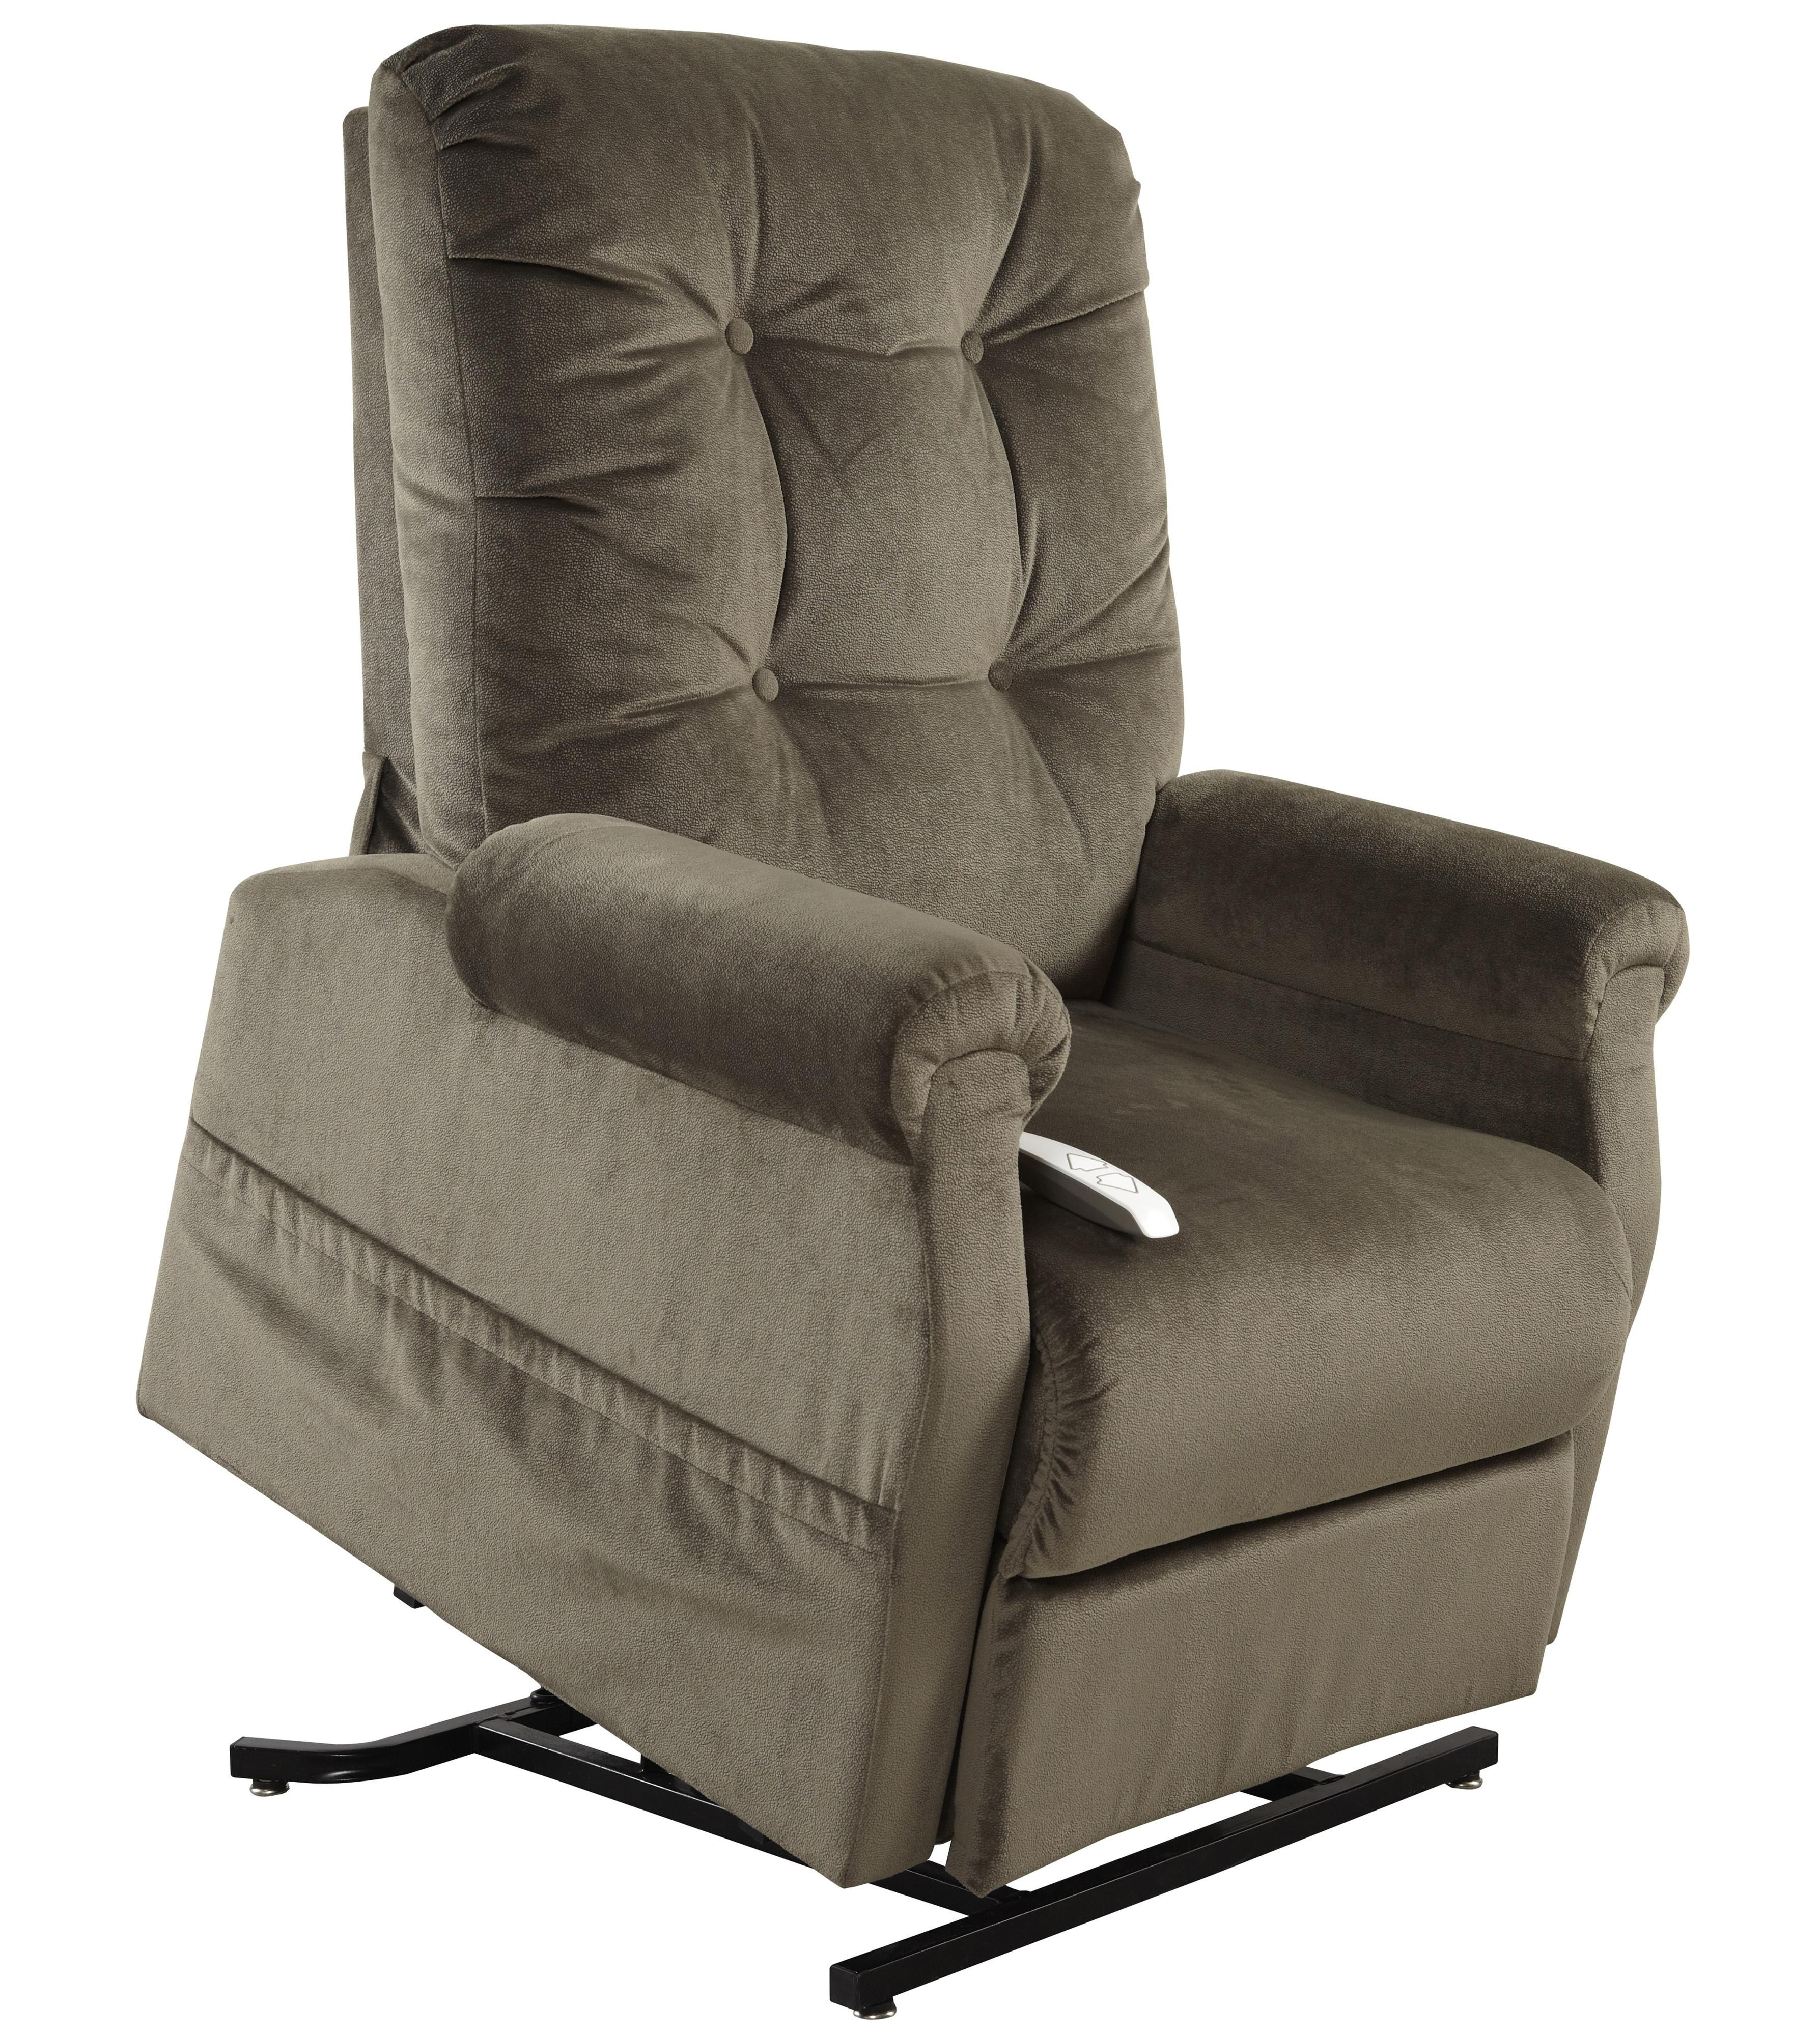 This three position power reclining lift chair will help